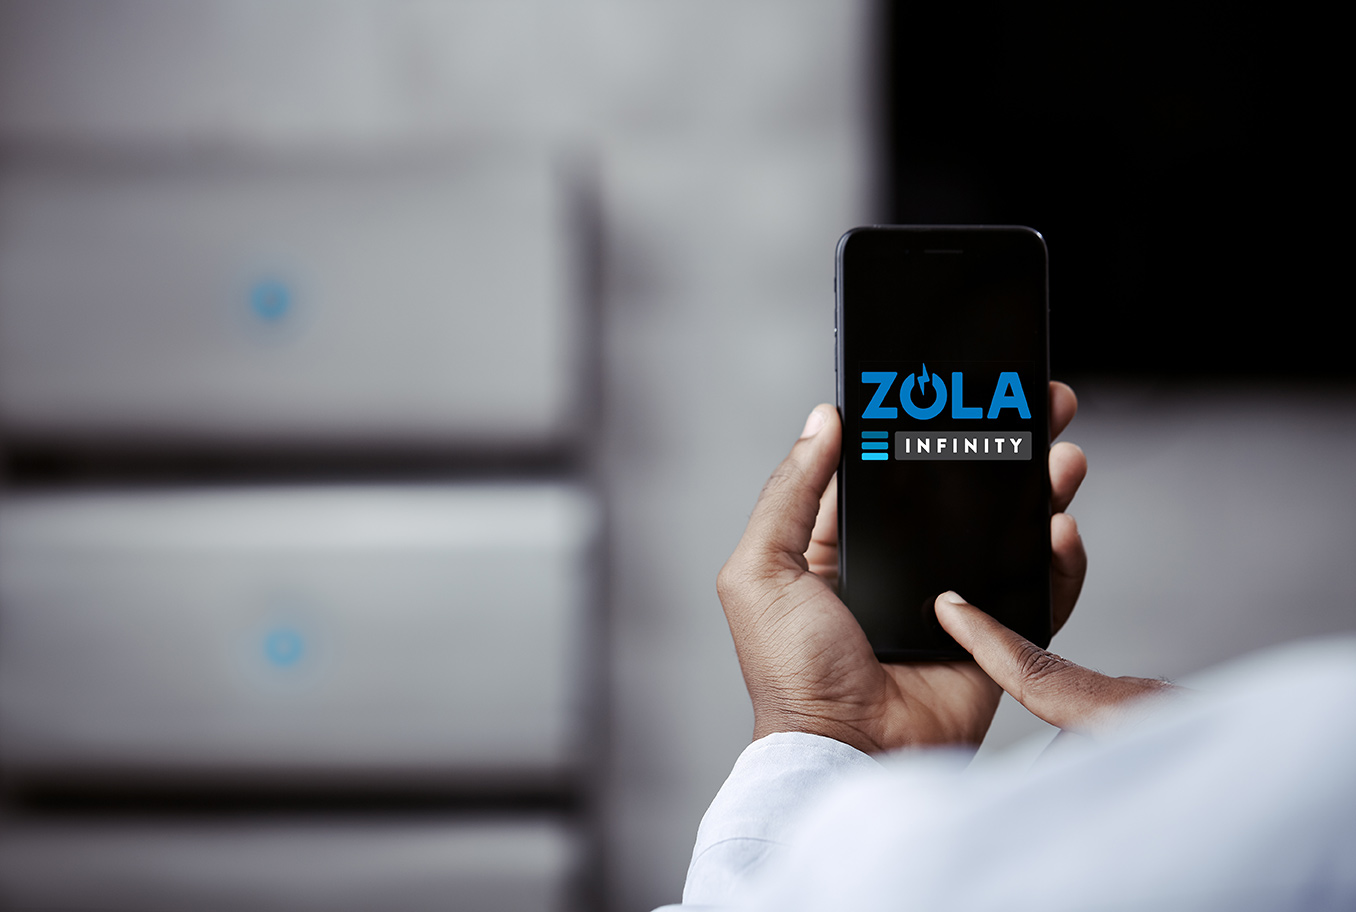 ZOLA-Electric-INFINITY-Africa-Nigeria-Lagos-Urban-Cutomer-using-App_KST1037.jpg